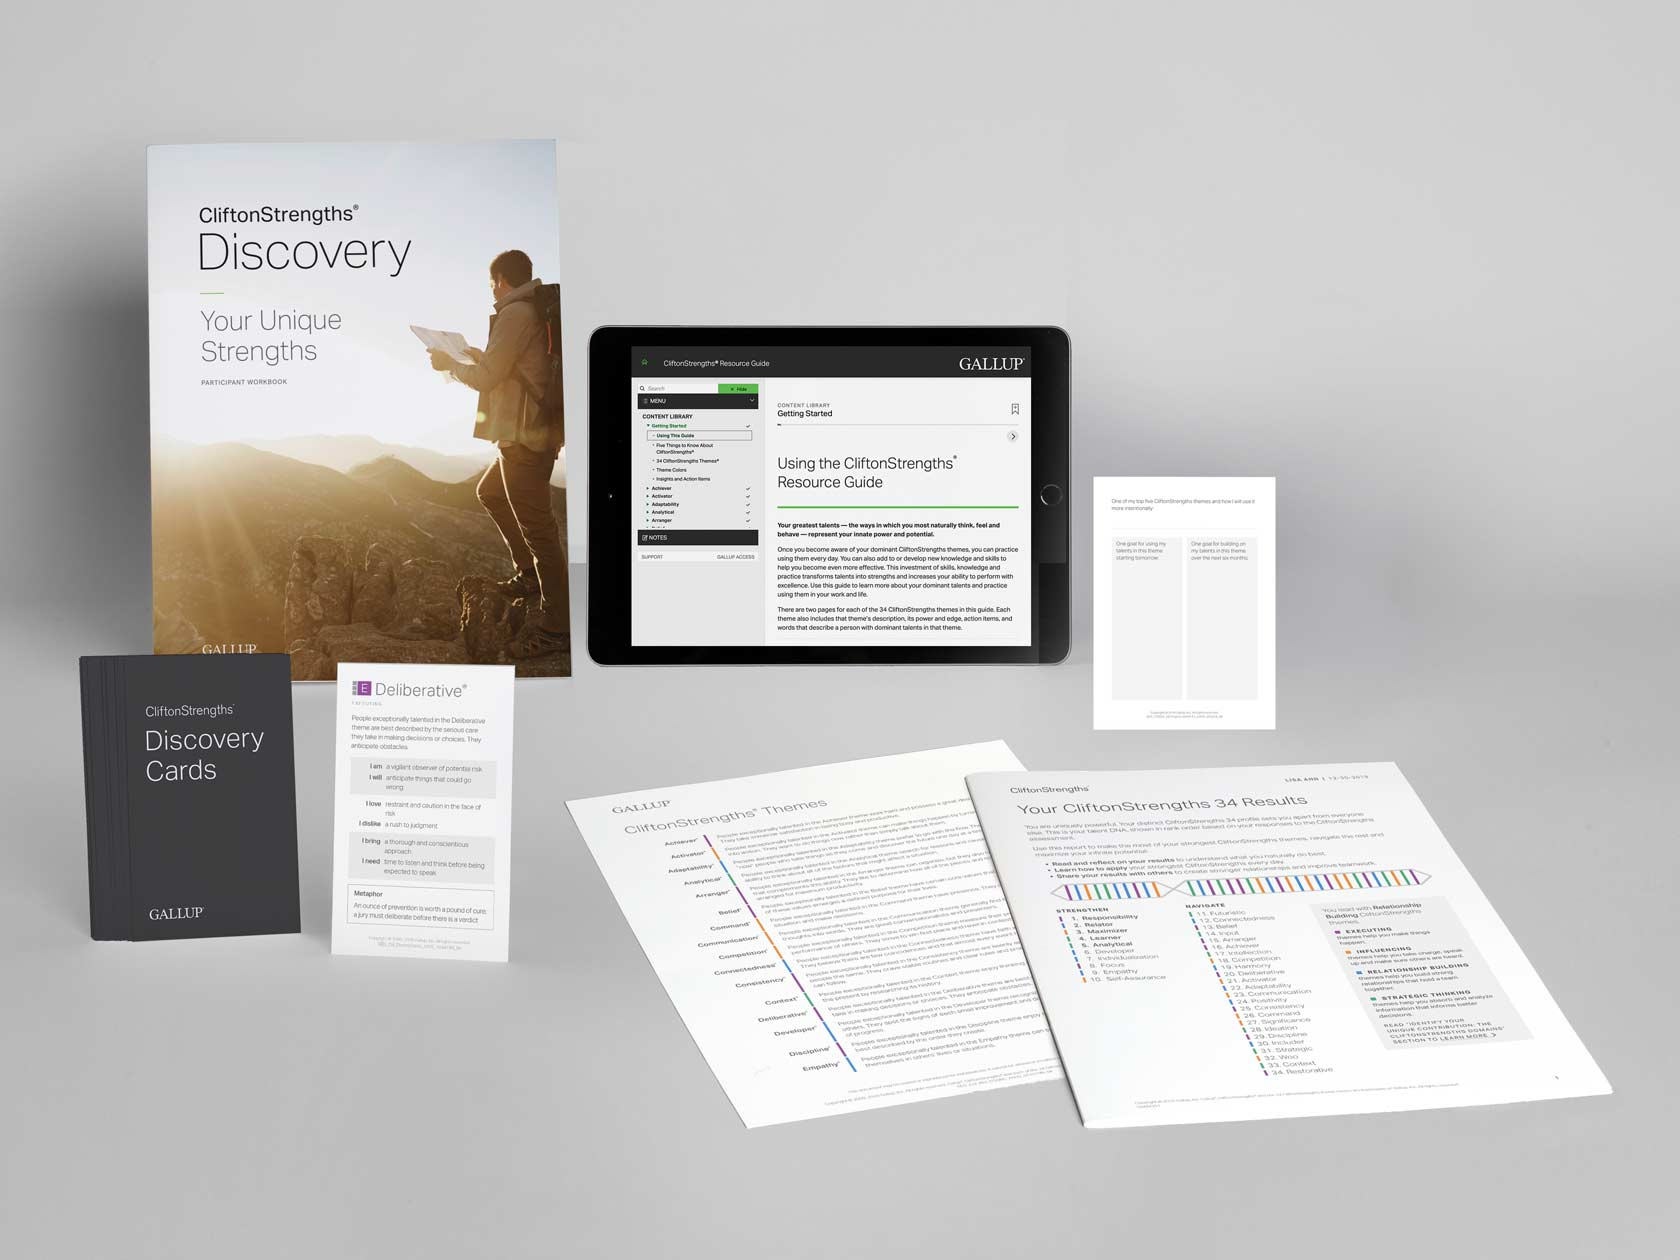 Materials included in the CliftonStrengths Discovery course.